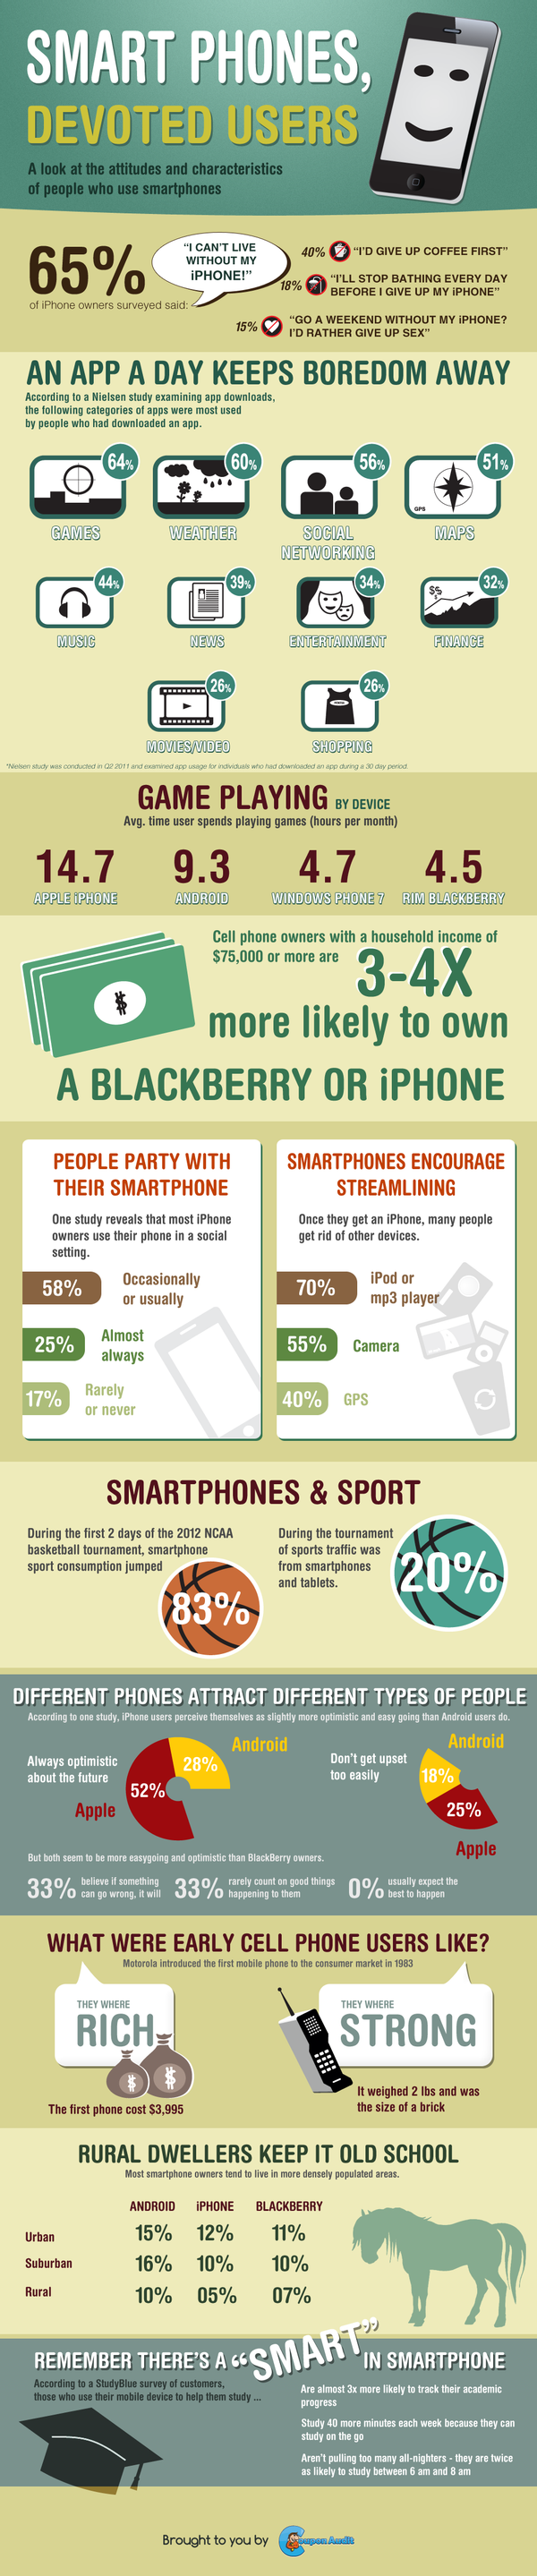 Smartphone Devoted Users